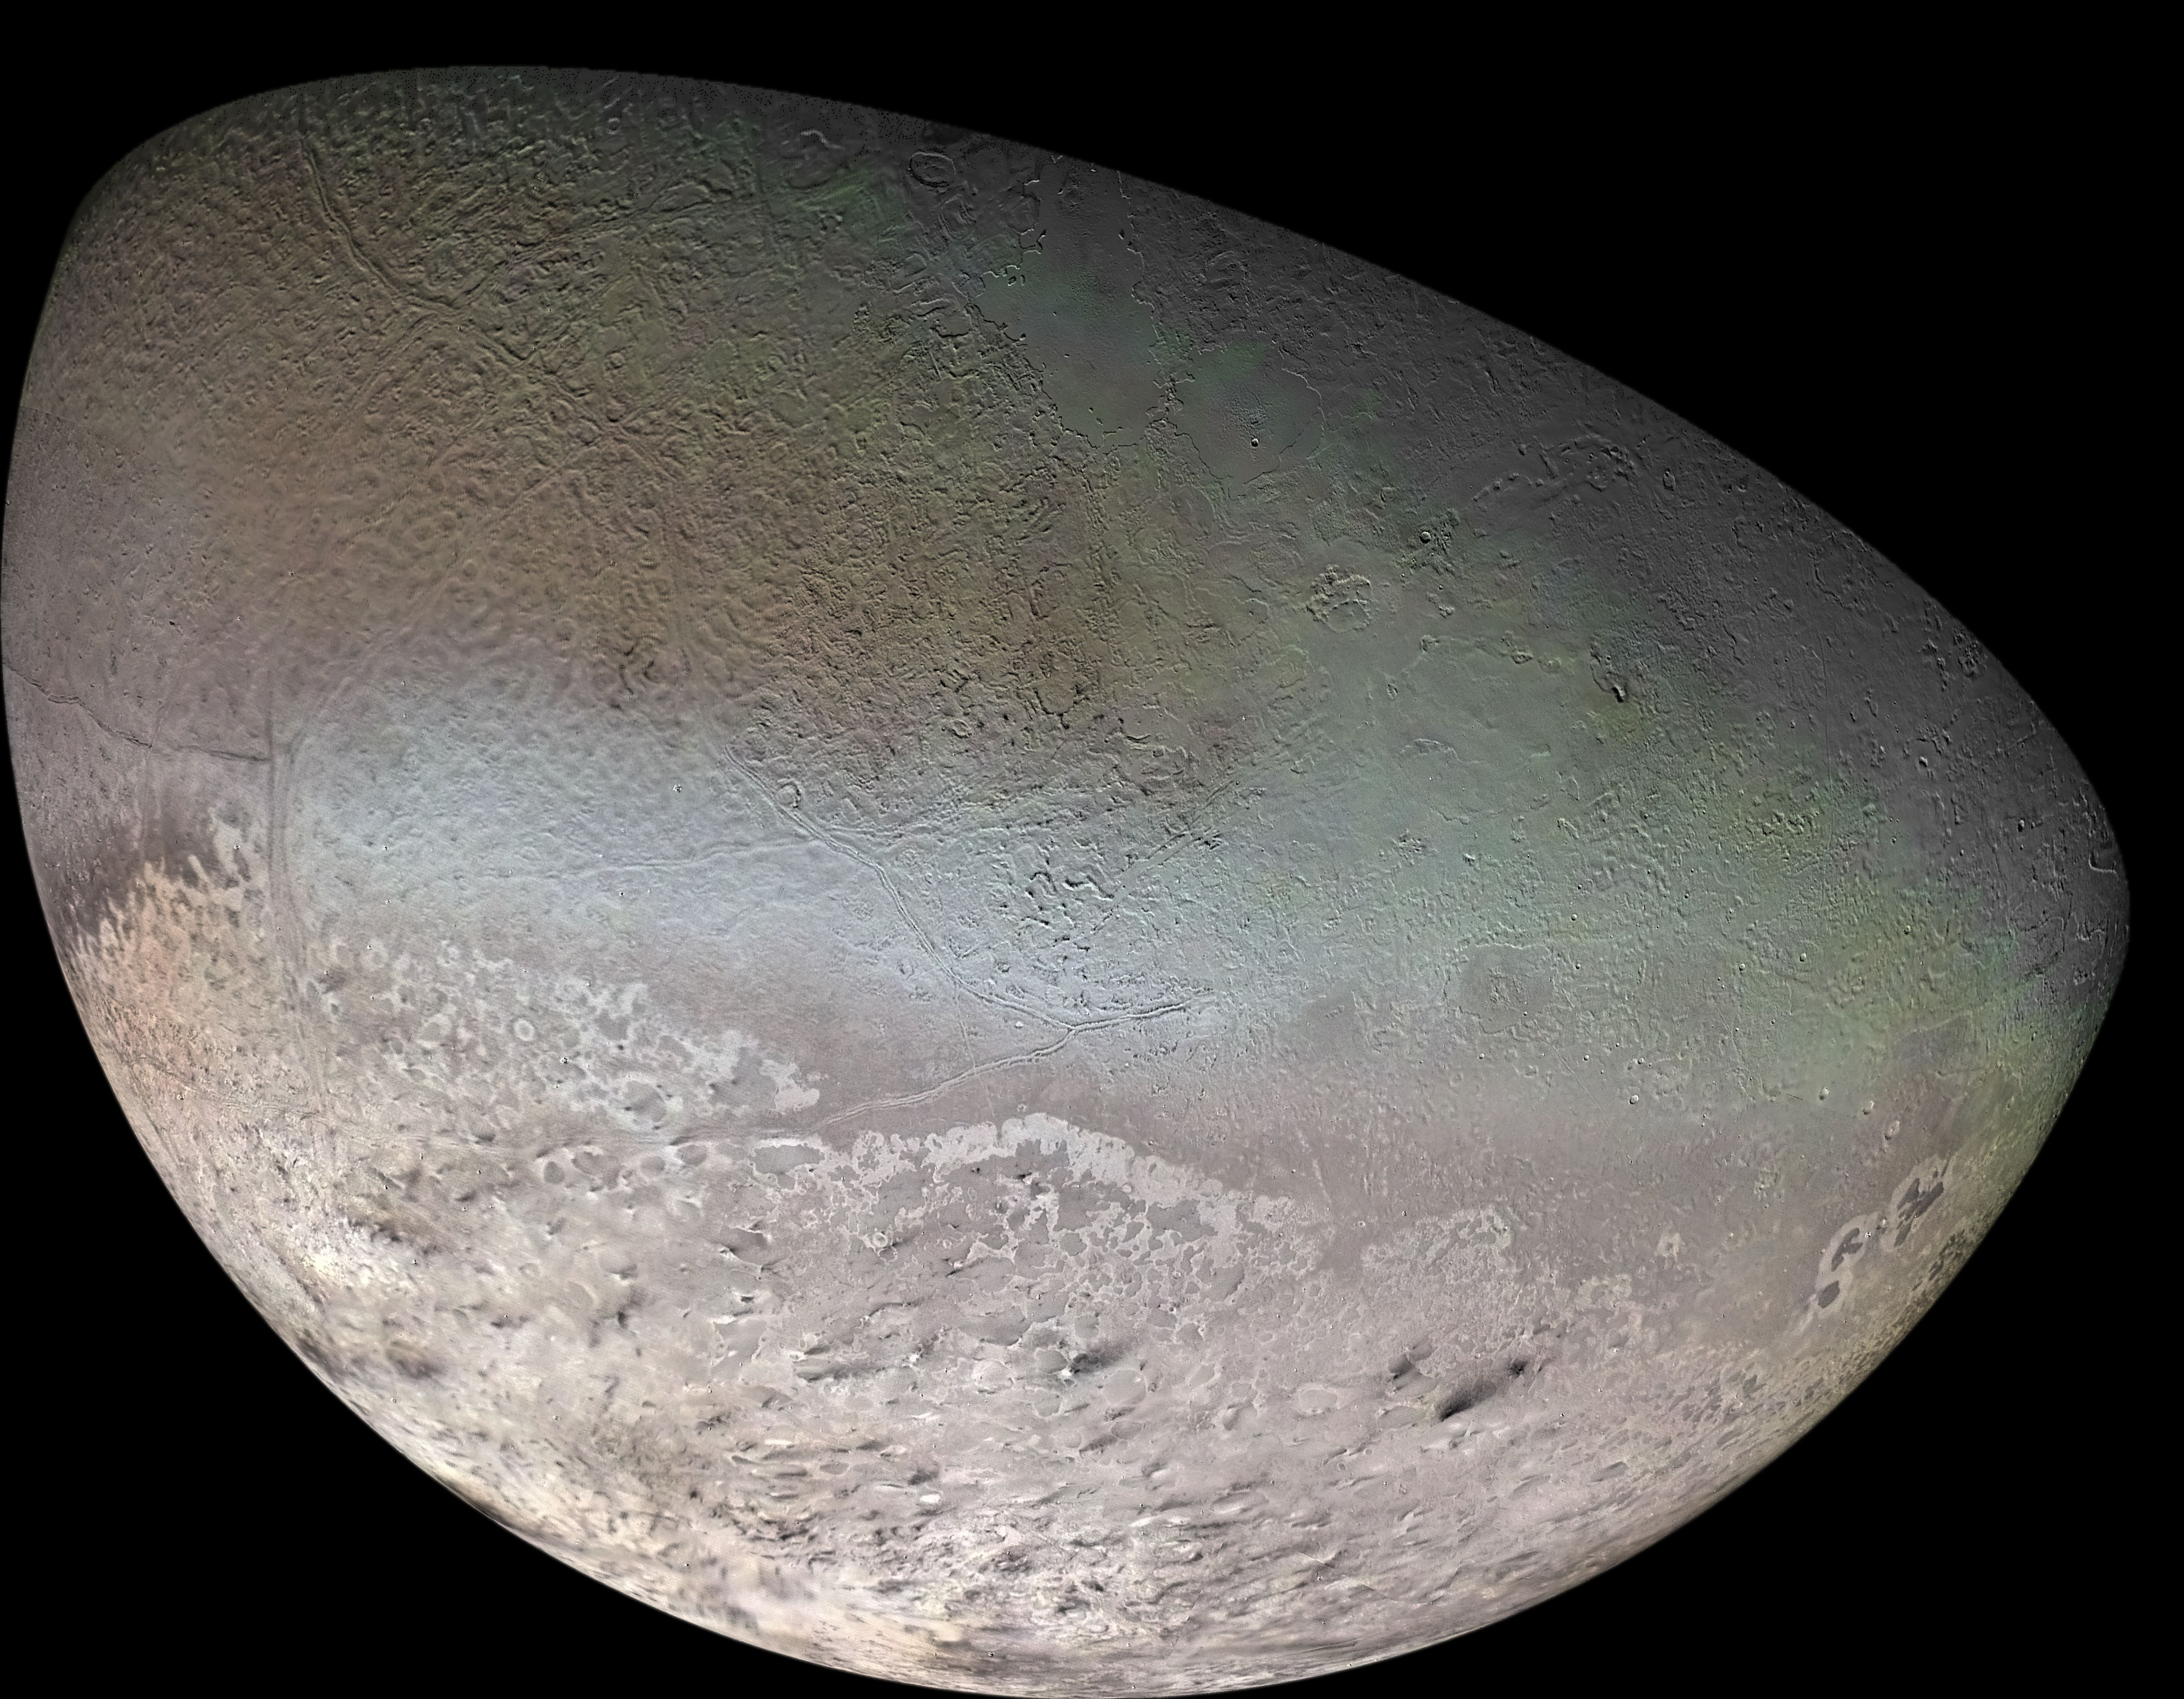 Photograph of Triton, the largest moon of planet Neptune.